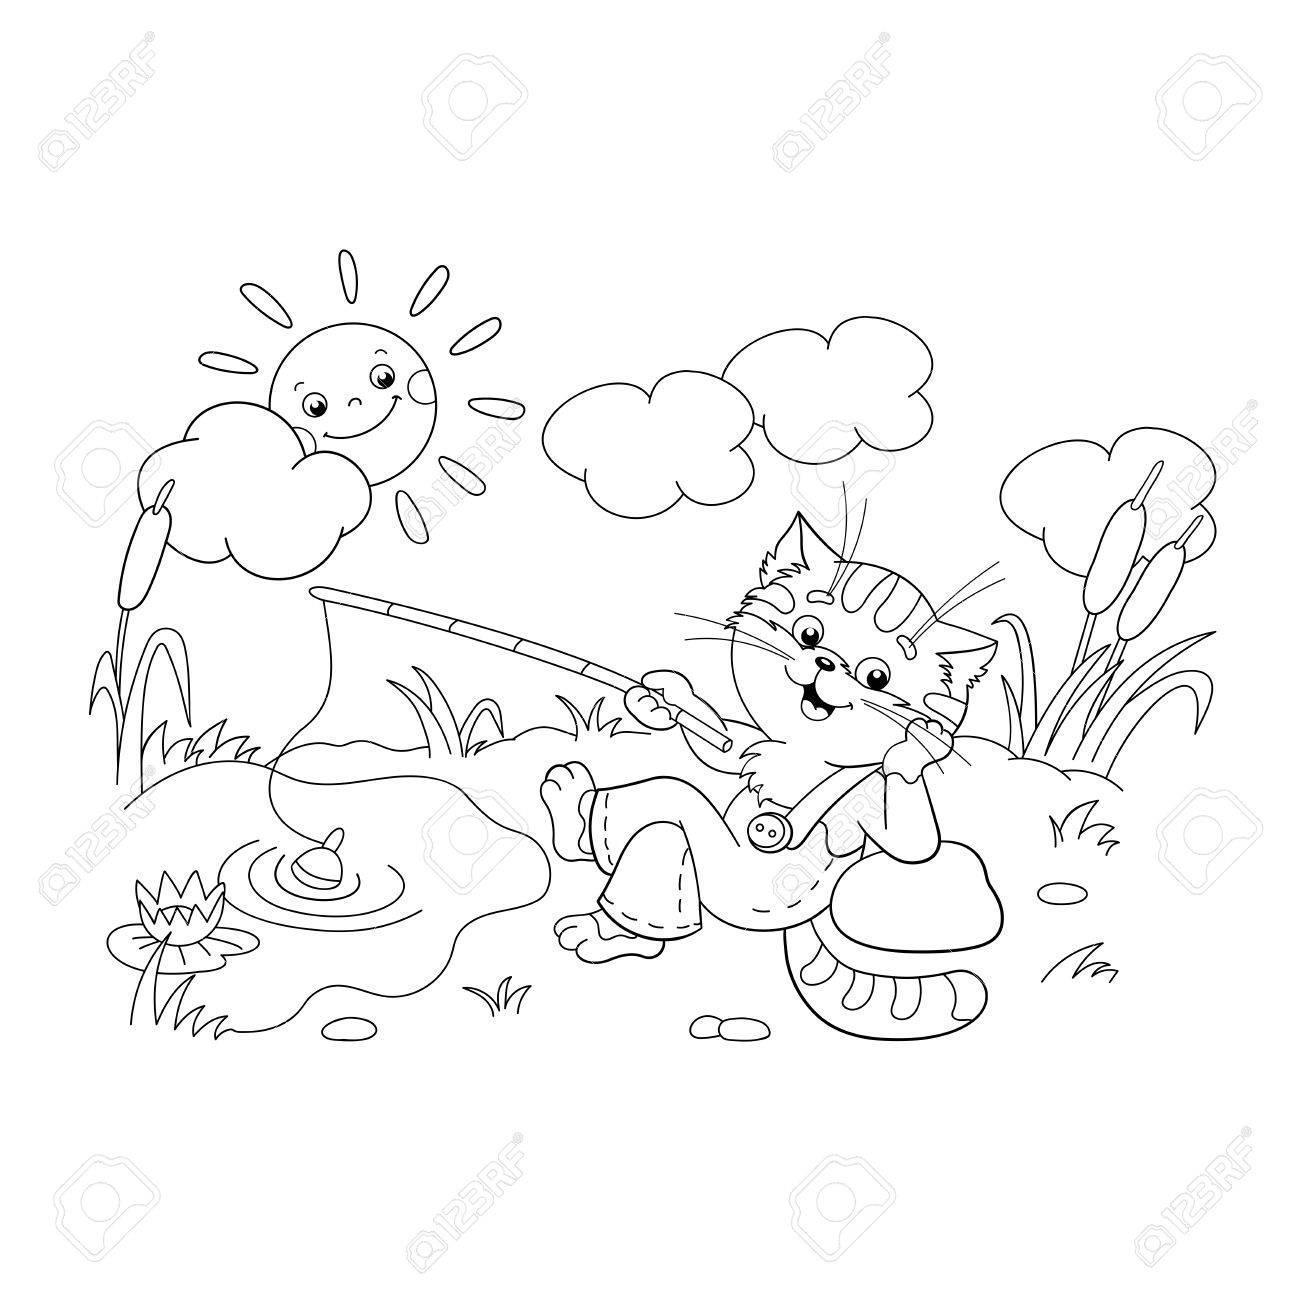 coloring page outline of a funny cat catching a fish on a pond